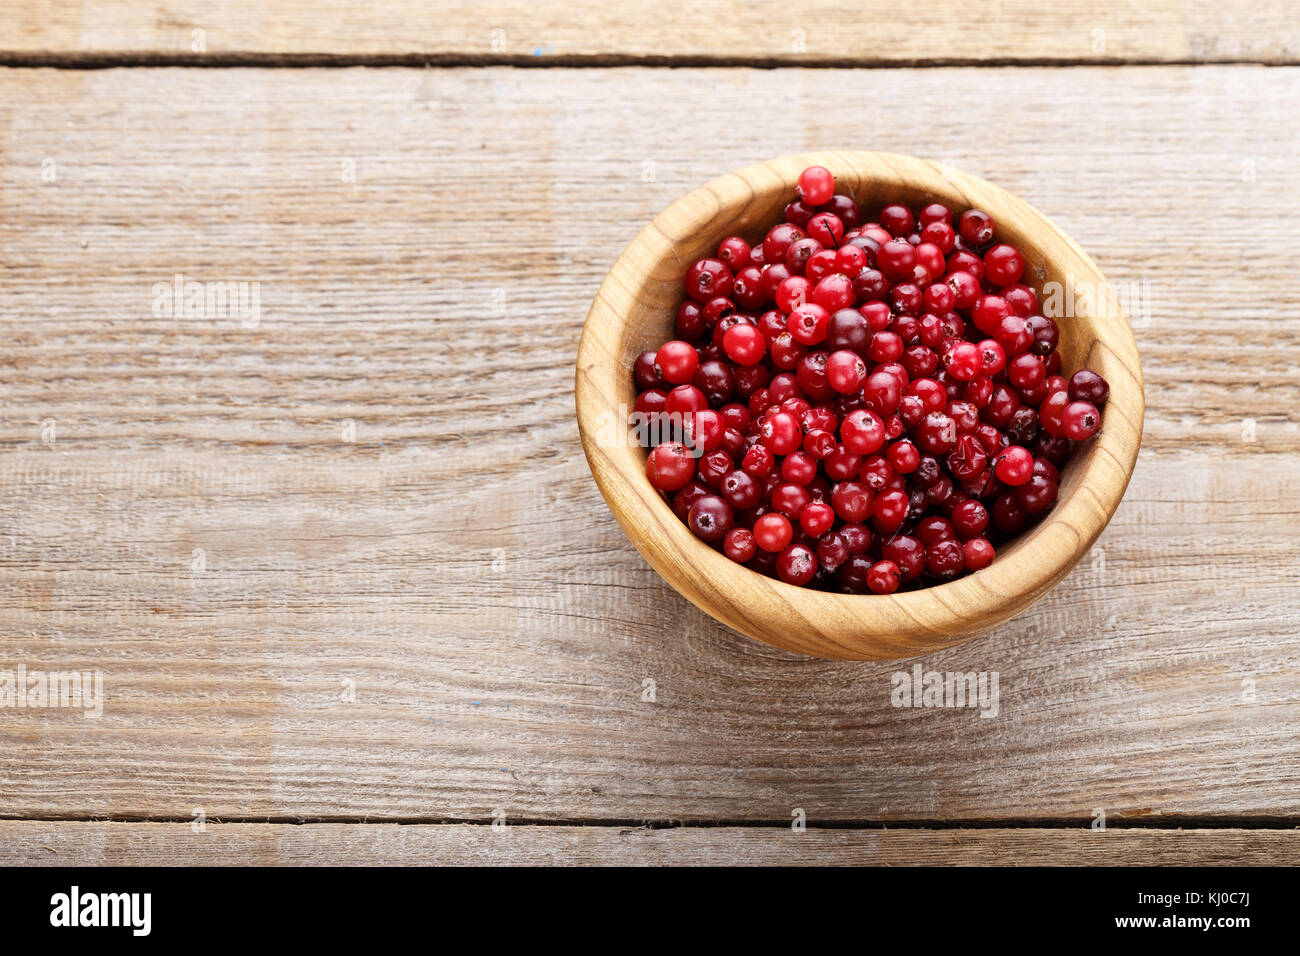 ripe cranberries in a plate, on a wooden background, organic vitamin product for strengthening immunity - Stock Image